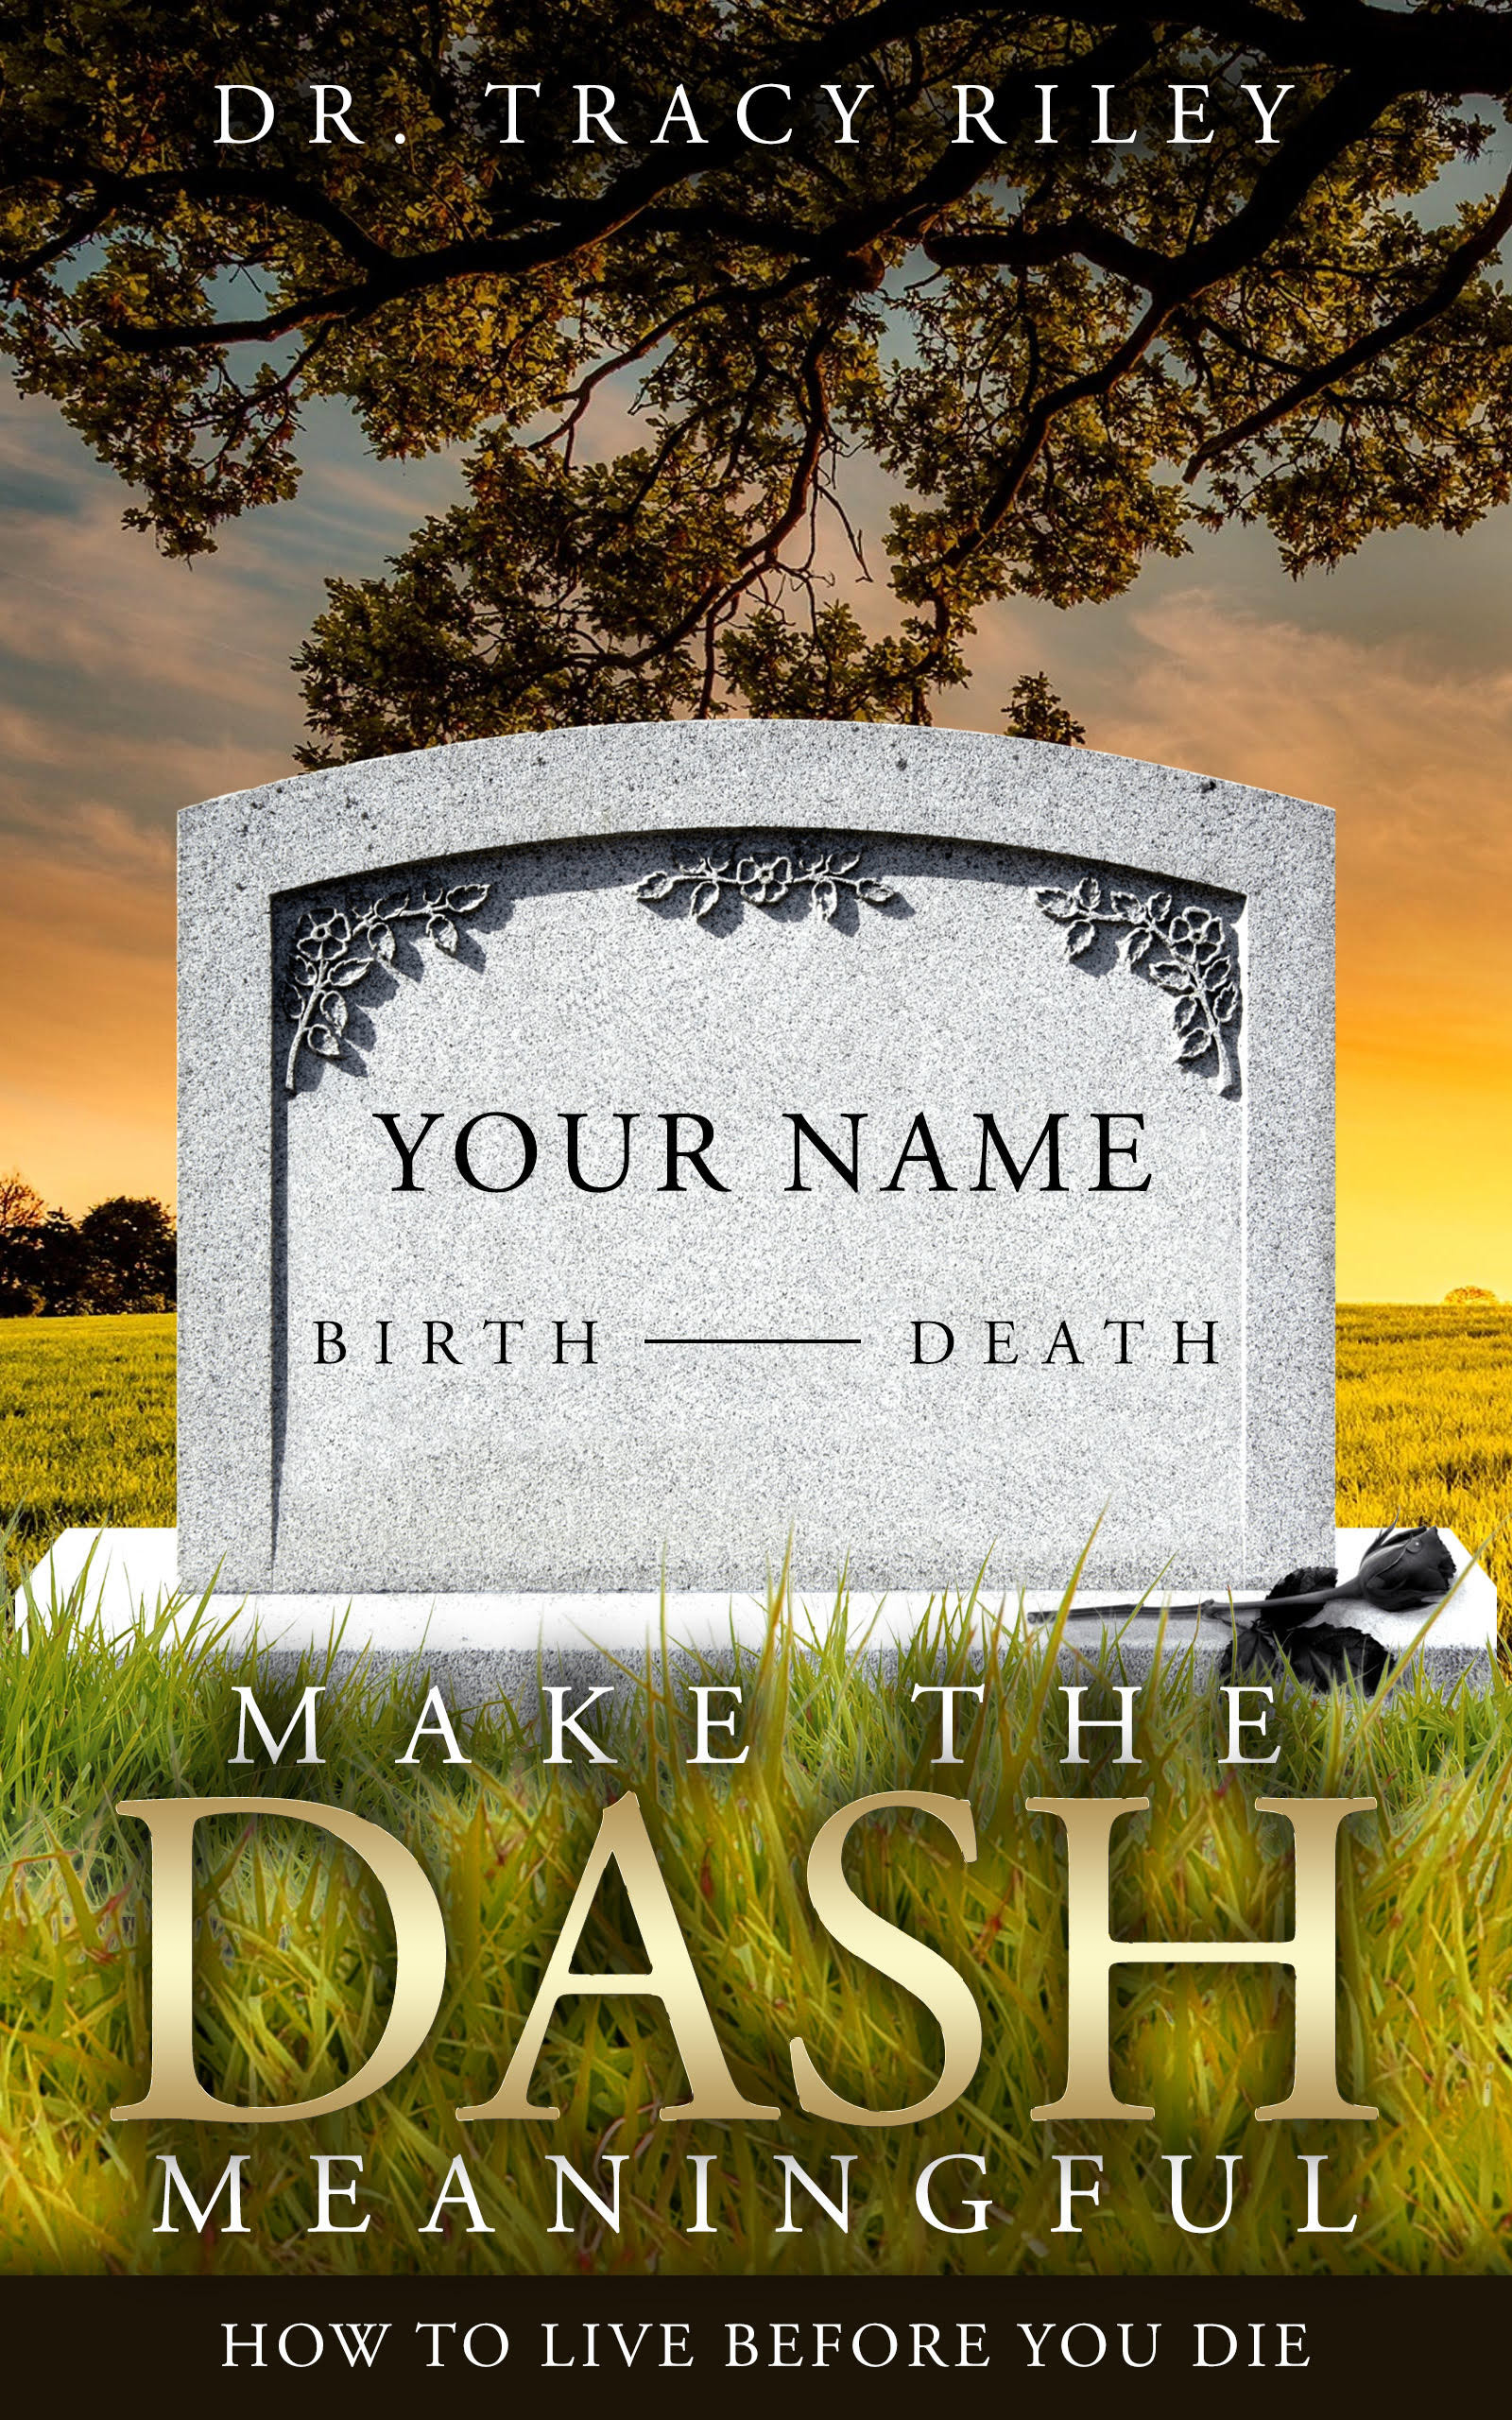 Make The Dash Meaningful